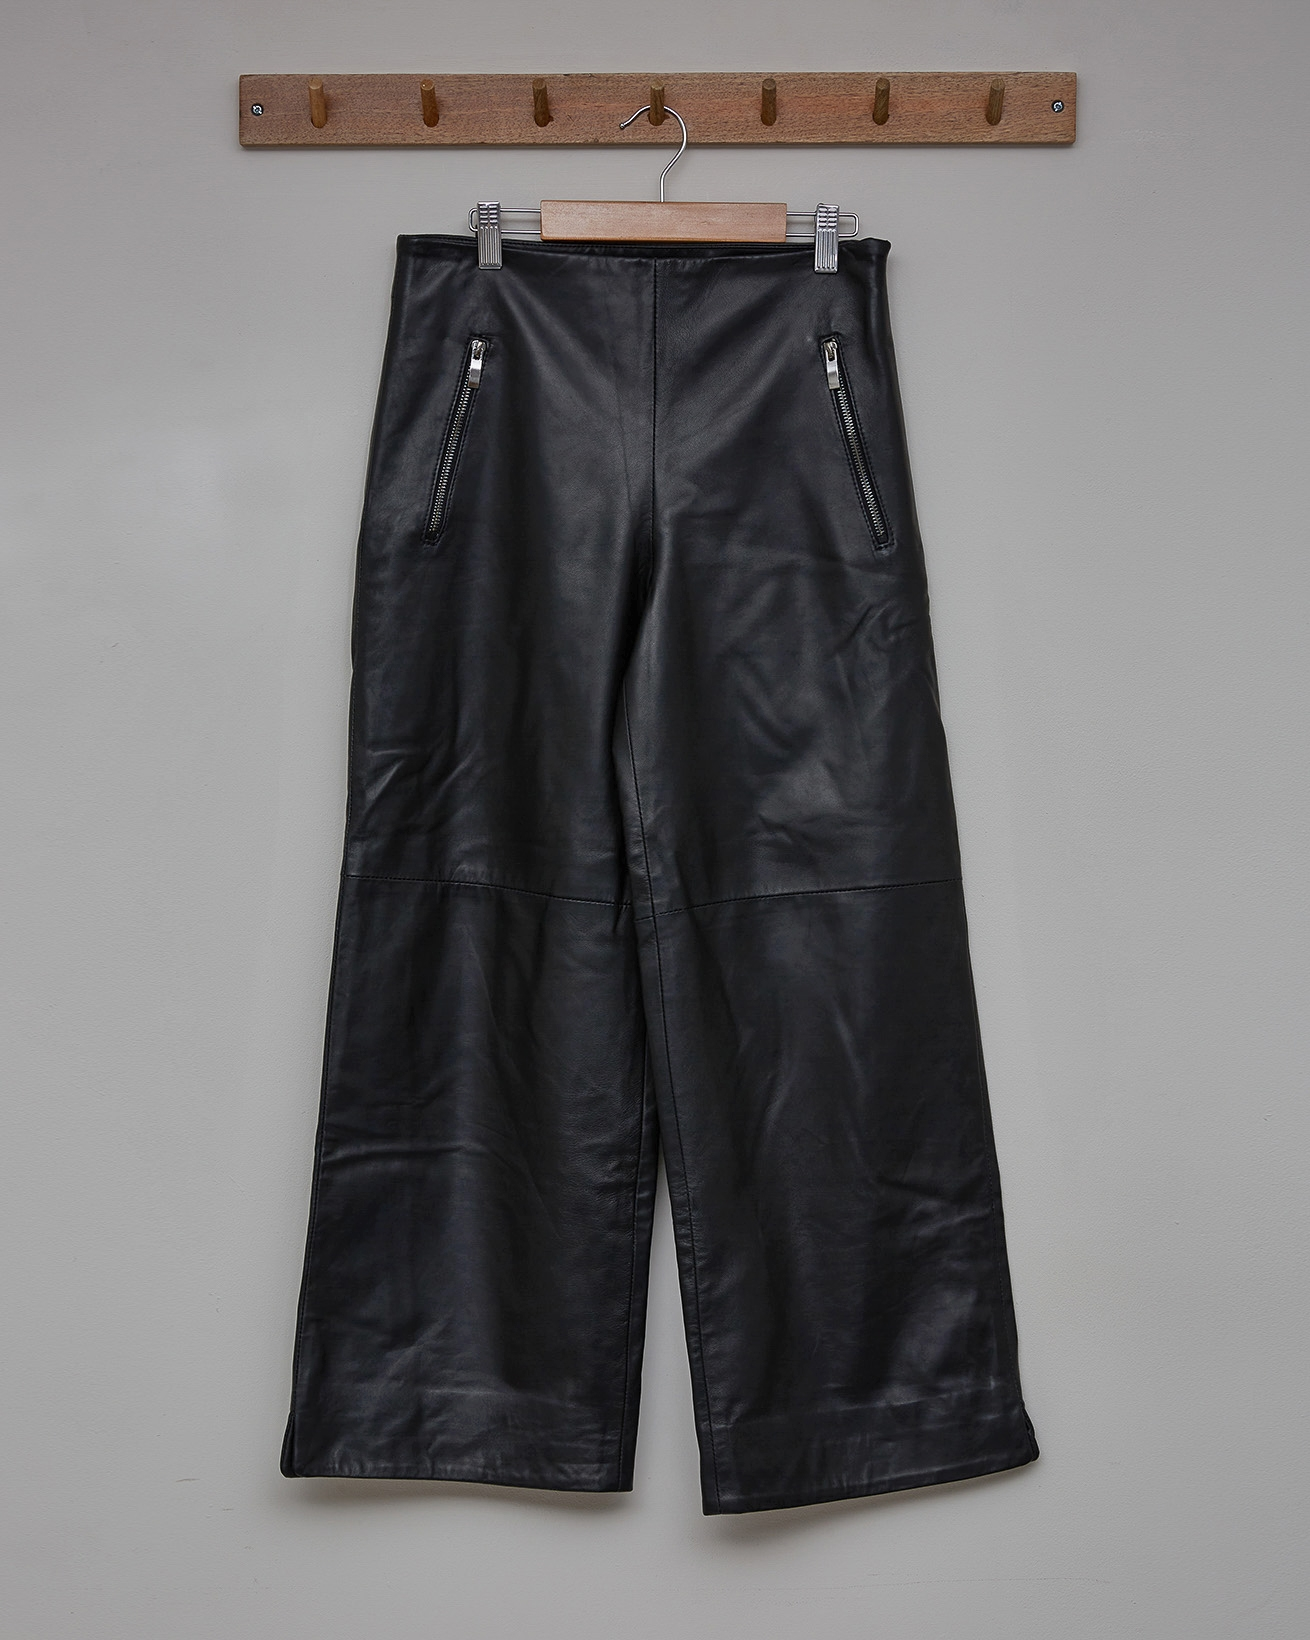 Cropped Wide Leg Leather Trousers - Size 8 - Black - 2365